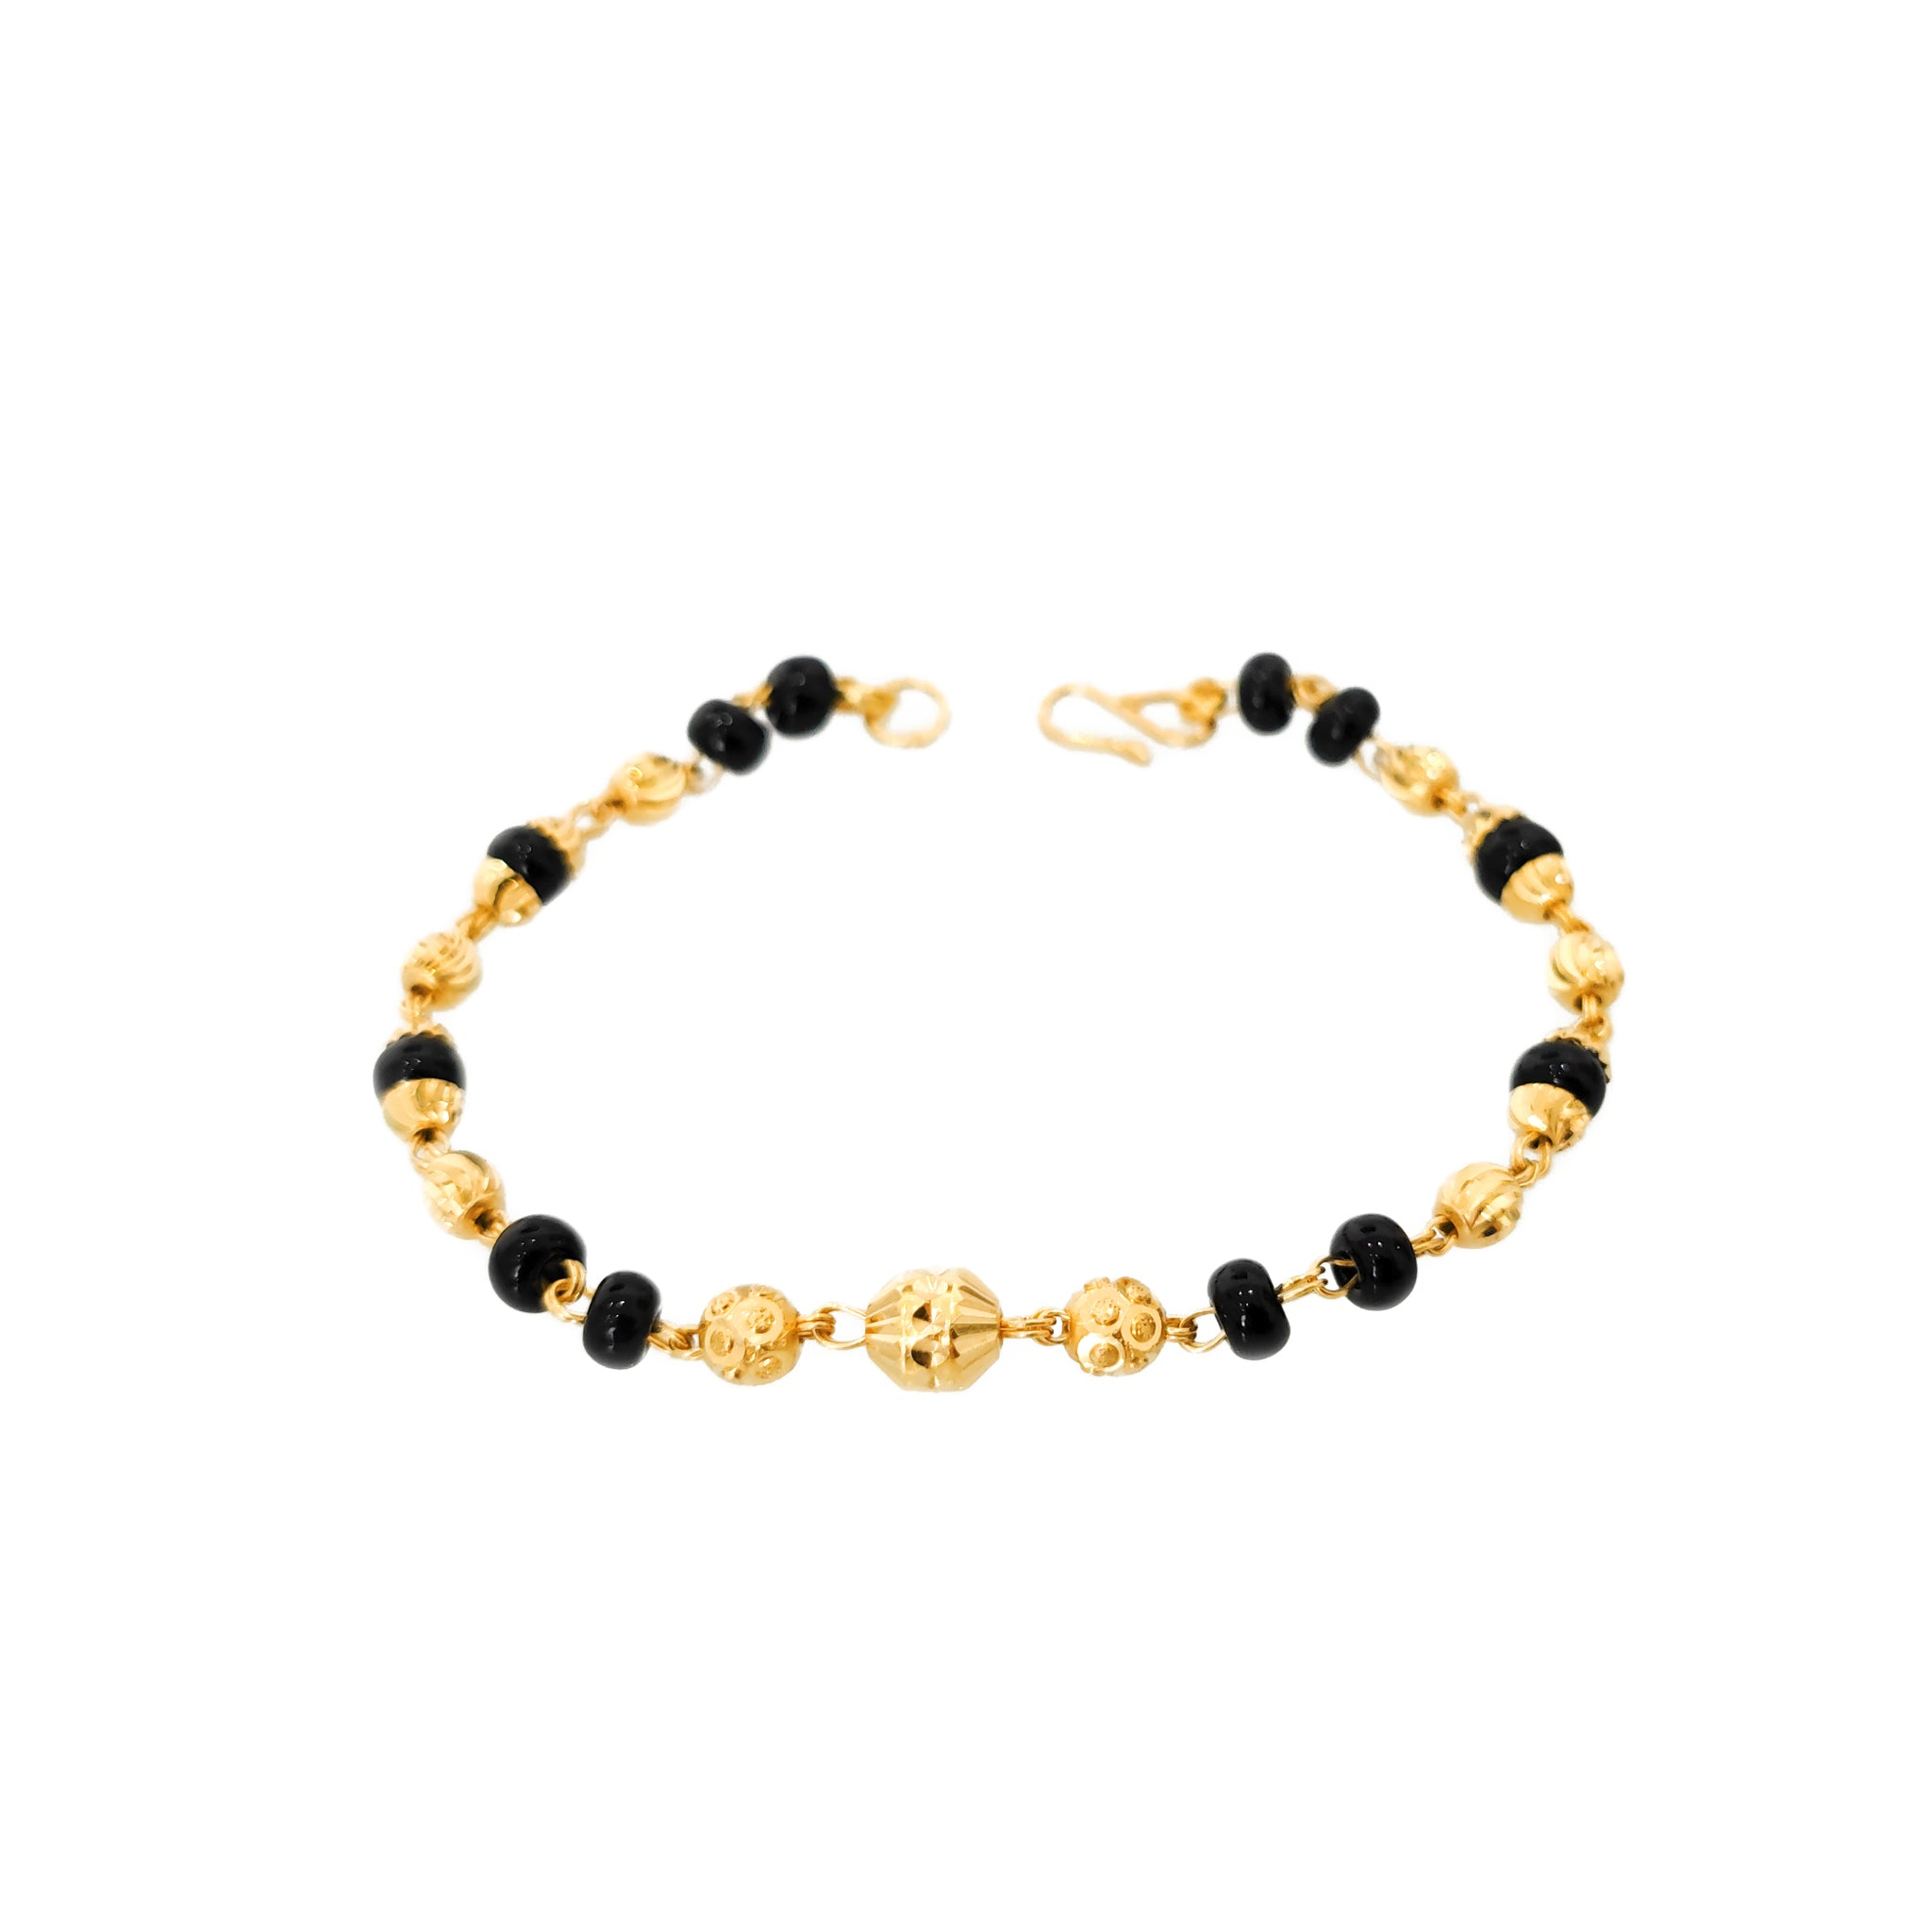 22ct Gold Children's Bracelets with Diamond Cut Design and Black Beads CBR-8172